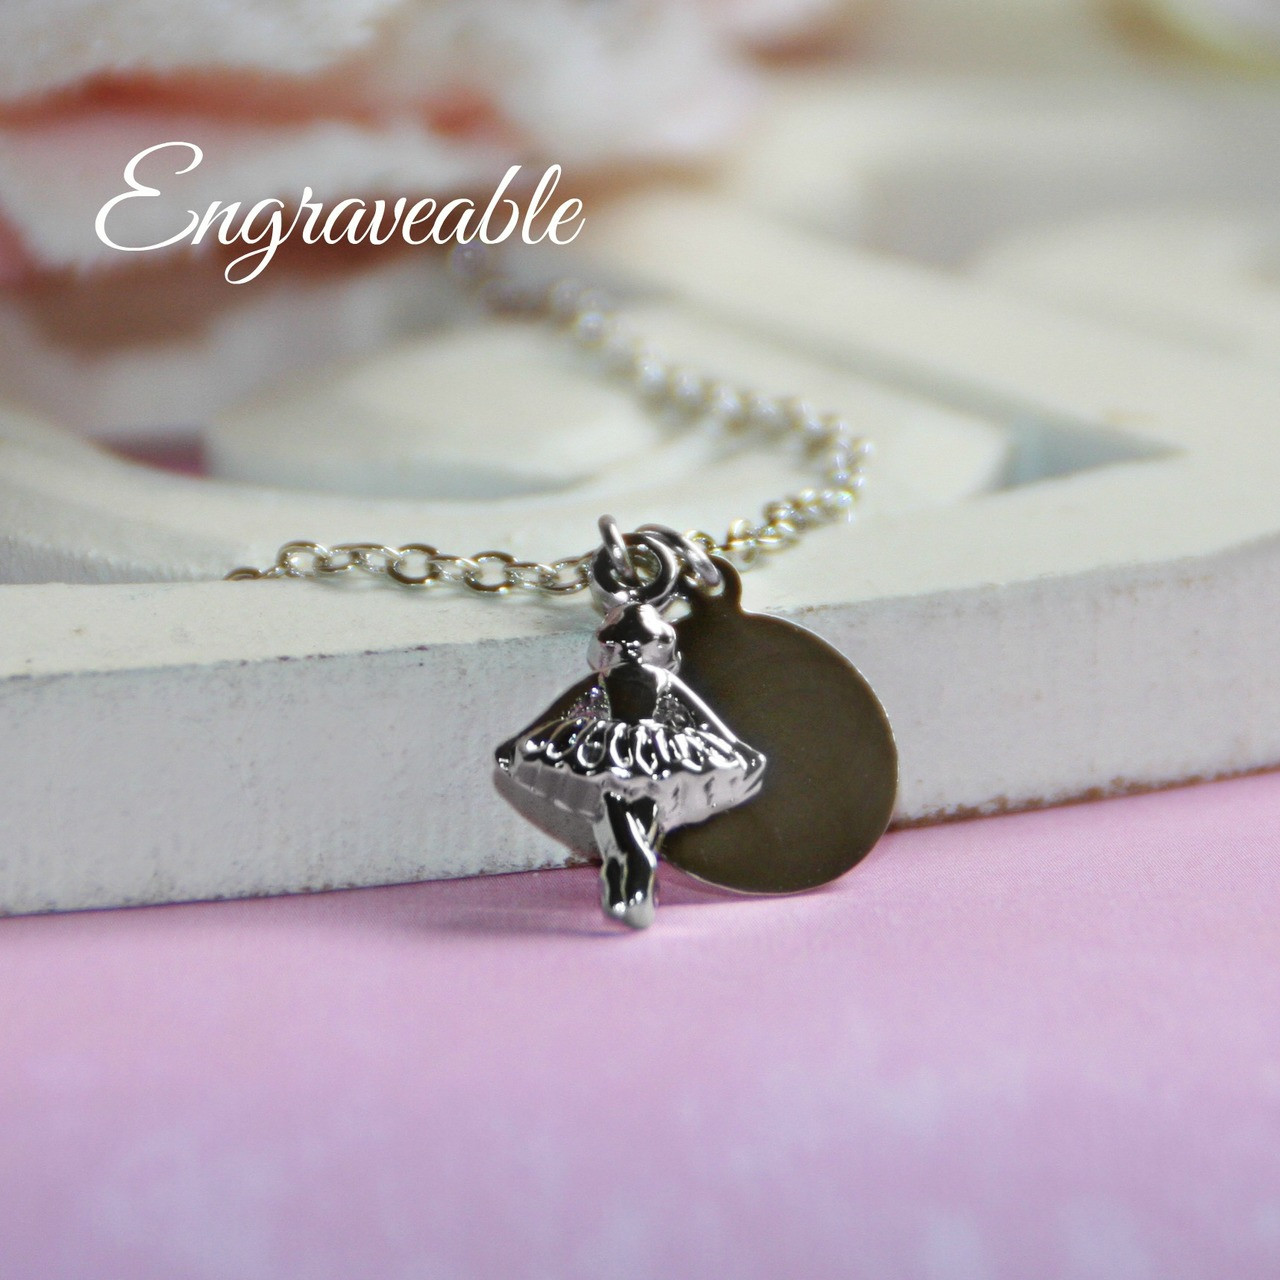 EG-4  Engraveable Stainless Disk with Ballerina Necklace